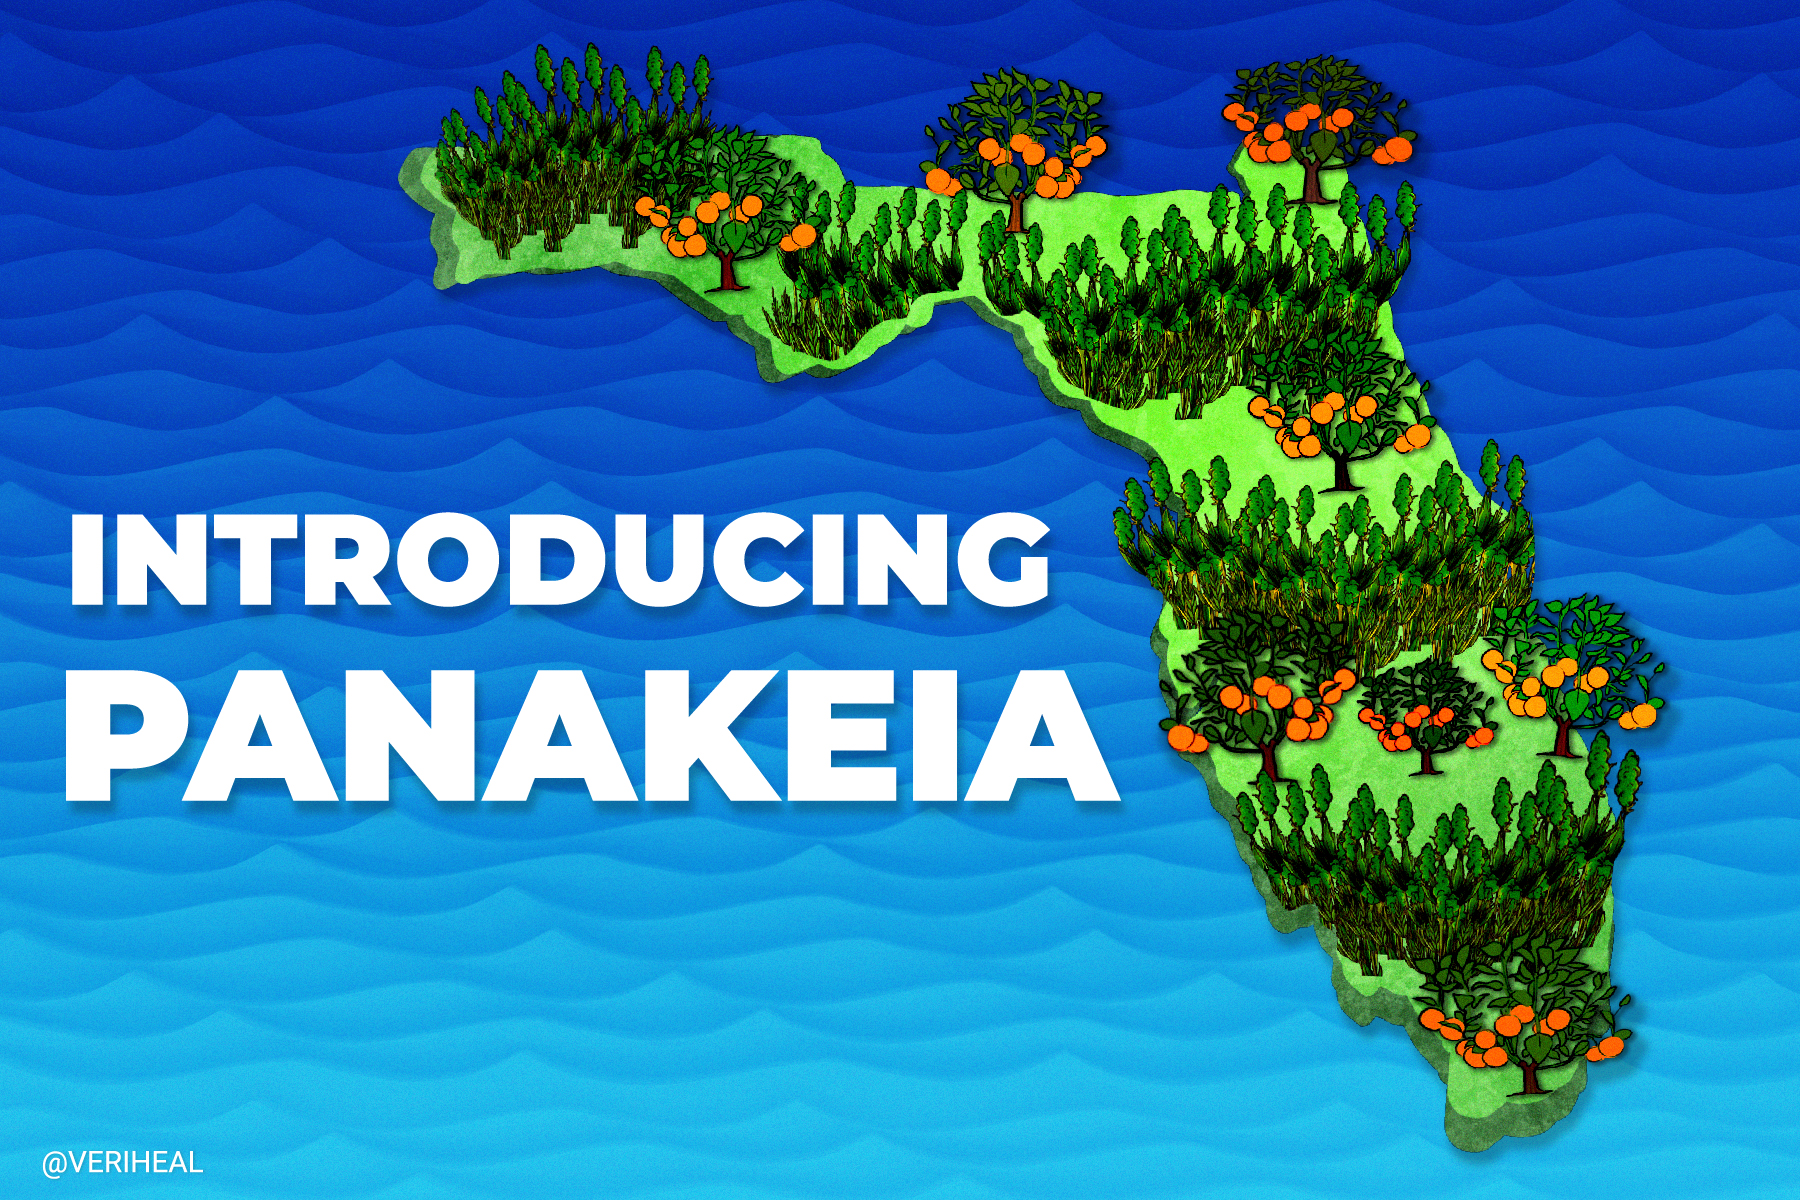 Panakeia: The First THC-Free Cannabis Plant Coming Out of Florida